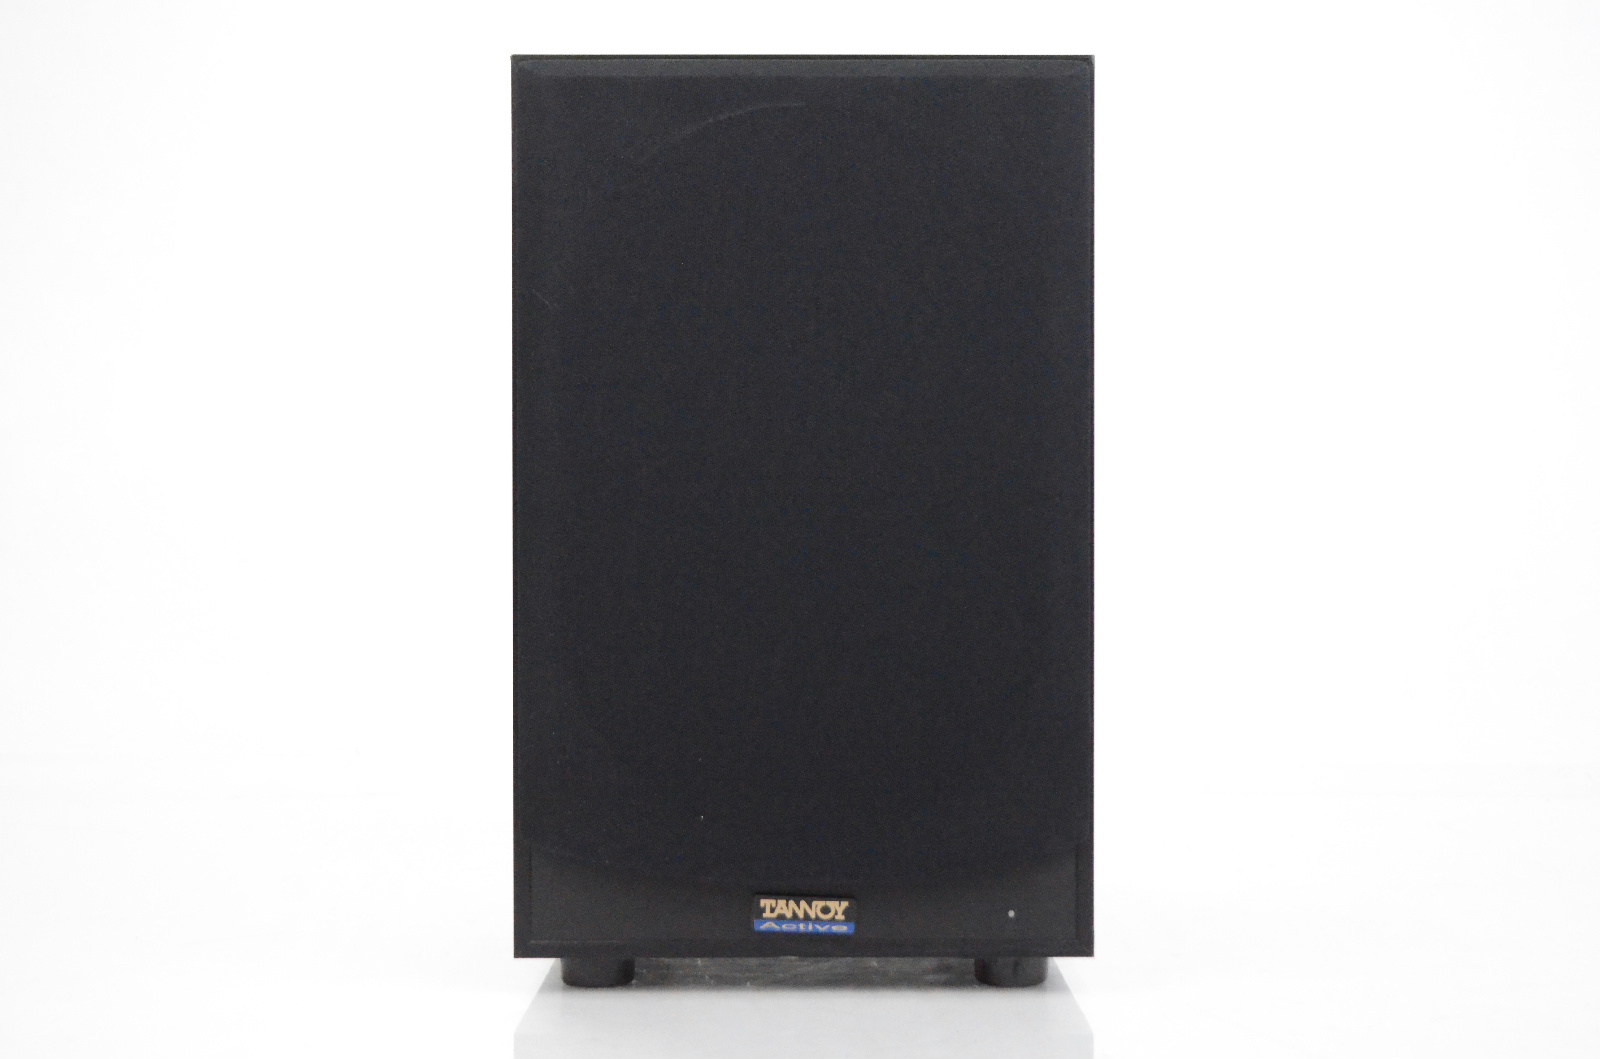 Tannoy PS 110-B 110B Active Sub Powered Subwoofer Owned by Reinhold Mack #33852